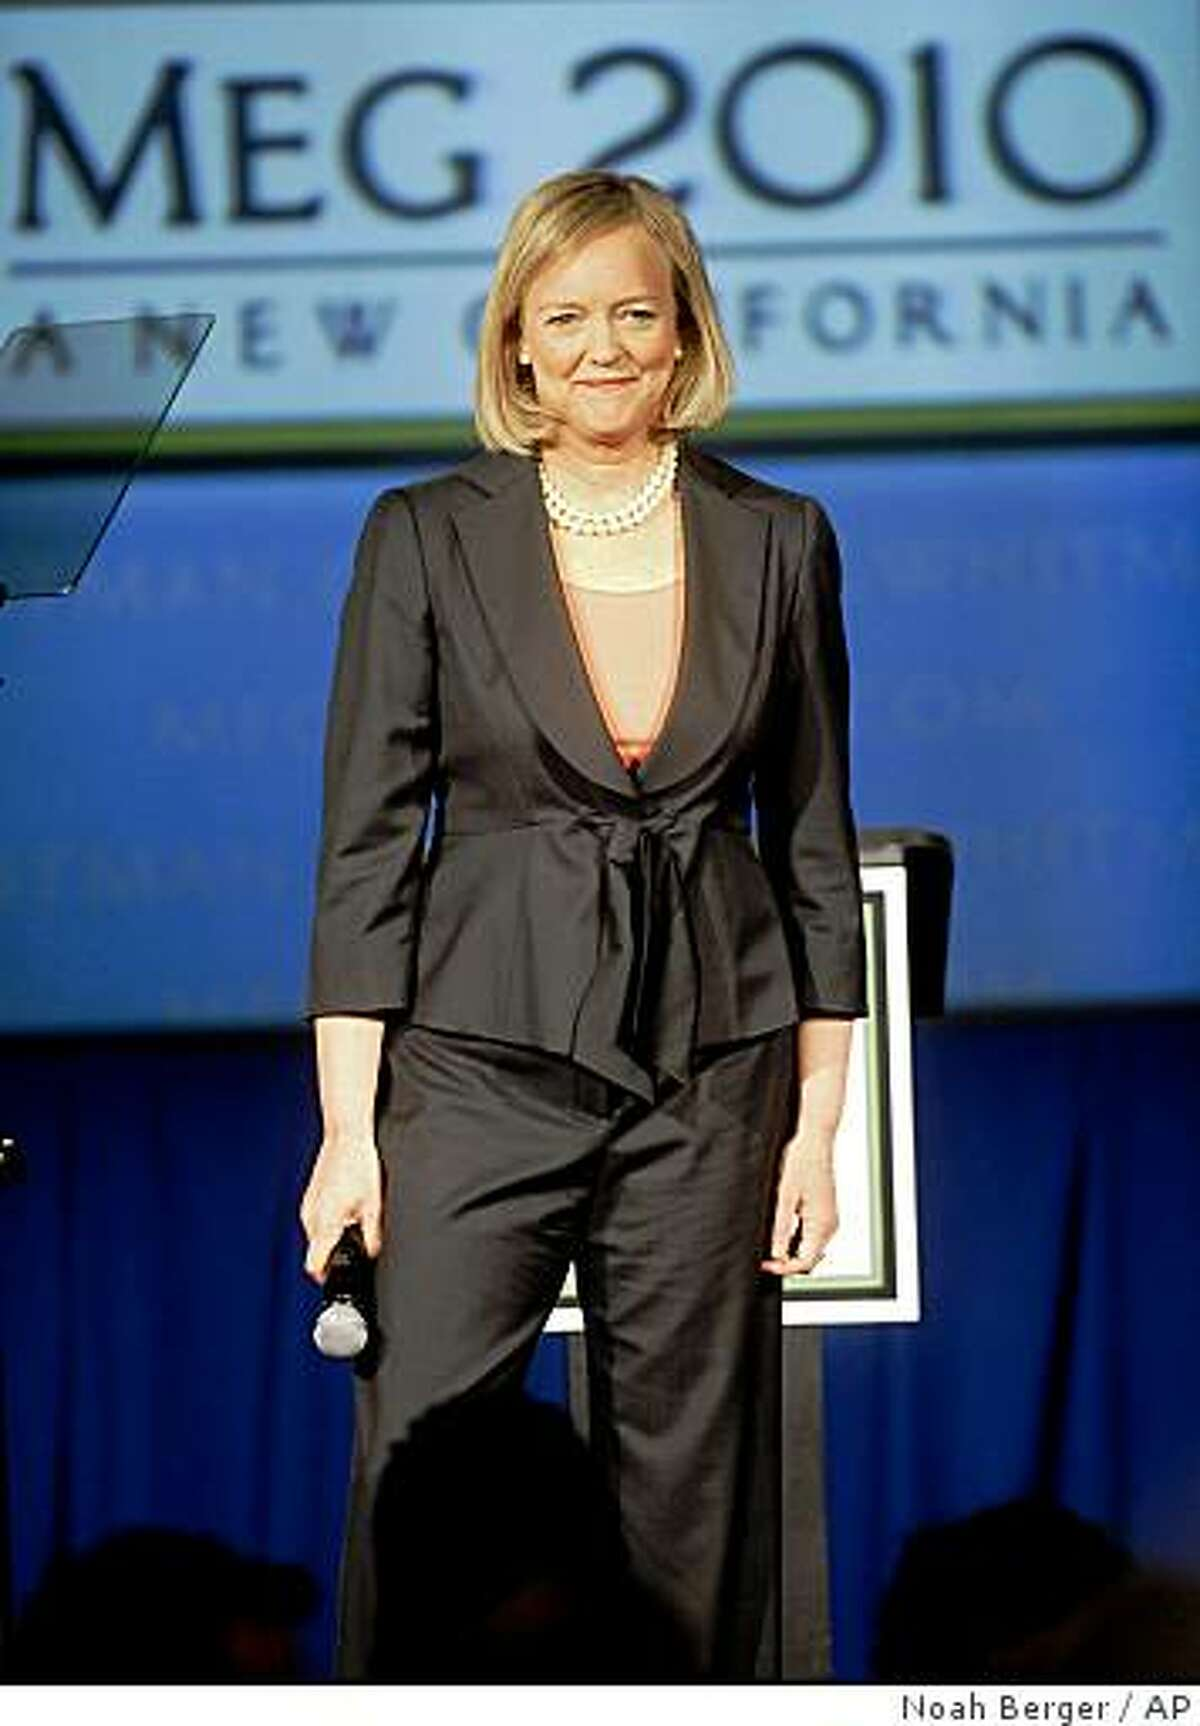 Meg Whitman, a likely candidate for California governor, speaks in San Jose, Calif., on Tuesday, Feb. 17, 2009. The former eBay chief executive stressed her goals of job creation and limited government.